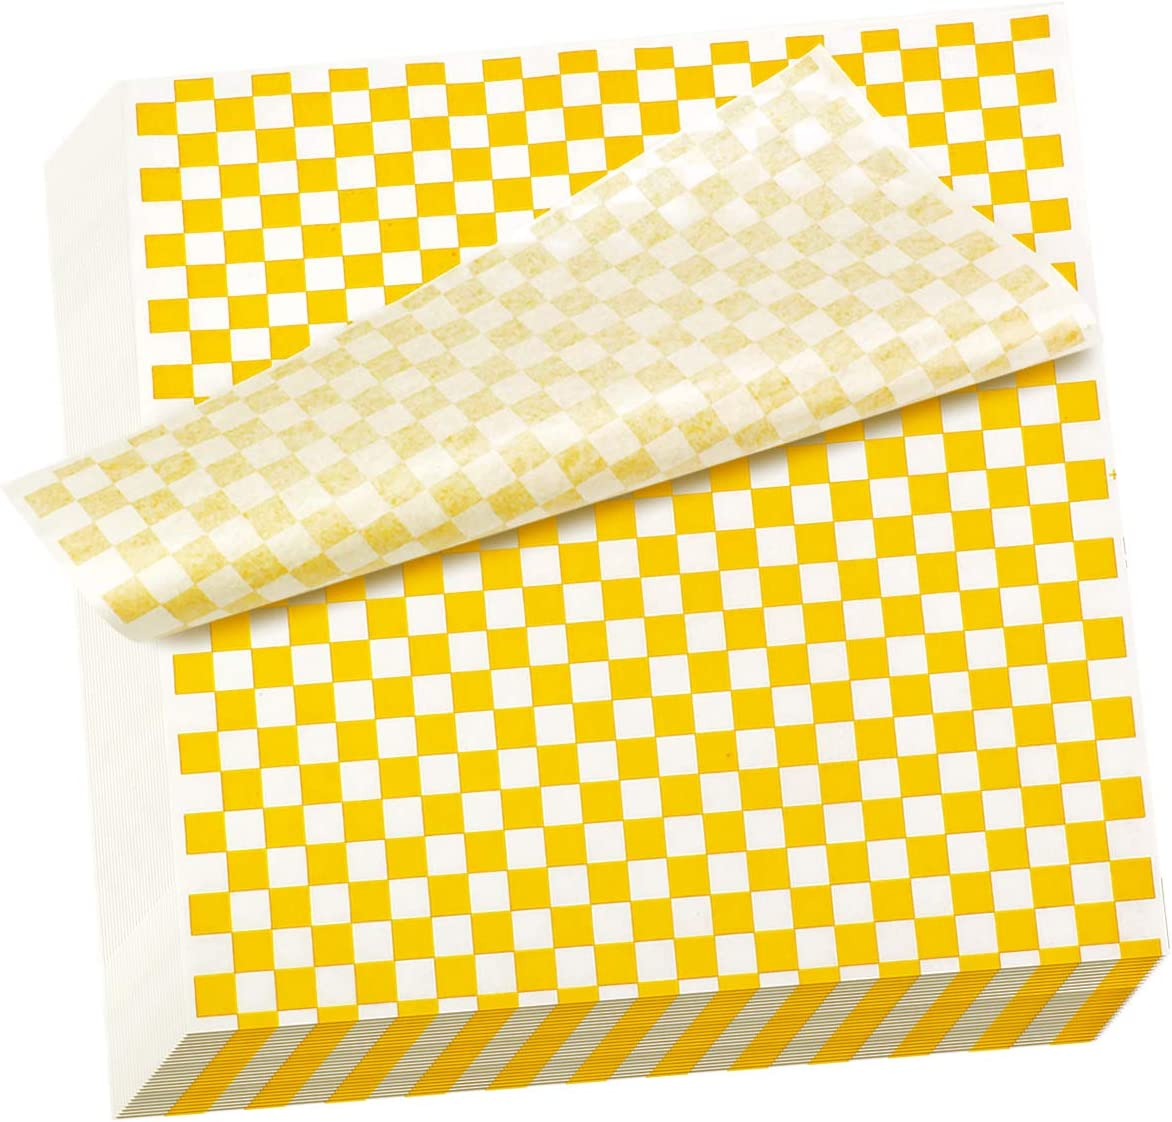 Hslife 100 Sheets Yellow and White Checkered Dry Waxed Deli Paper Sheets, Paper Liners for Plasic Food Basket, Wrapping Bread and Sandwiches(11''x11.6'')